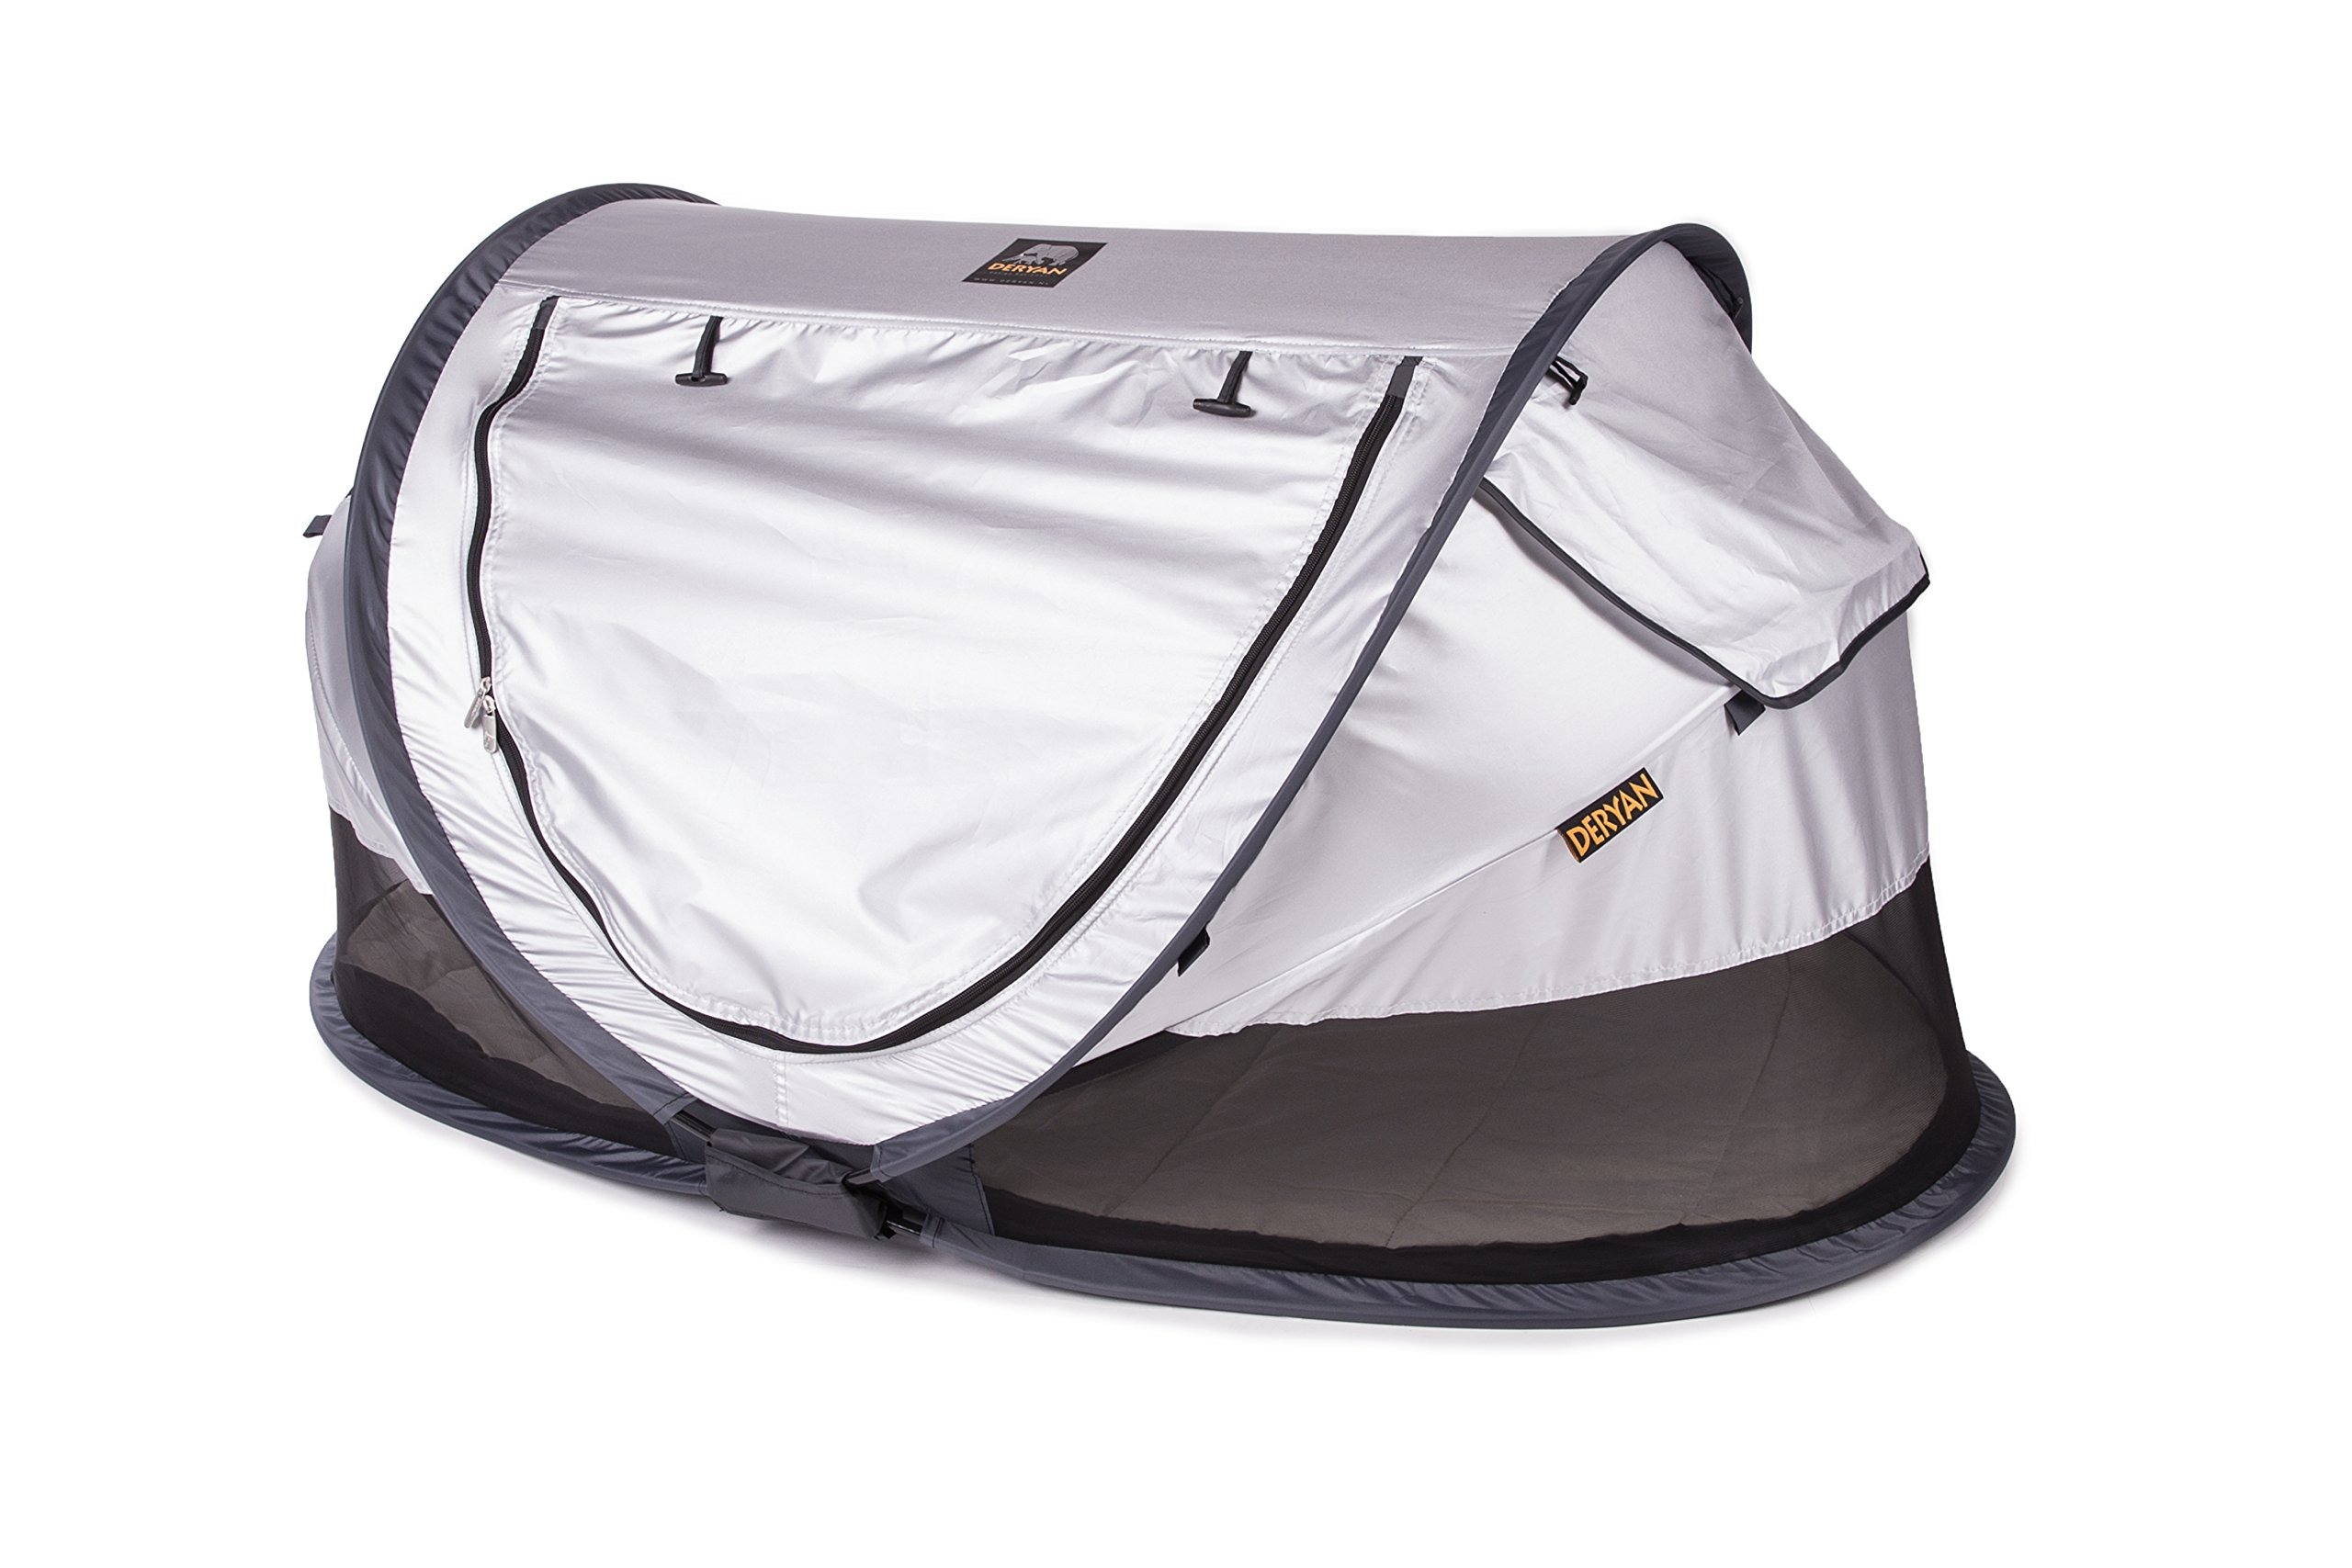 Travel Cot Peuter Luxe (Silver) Deryan 50% UV Protection and flame retardant fabric Setup in 2 seconds and a anti-musquito net  2